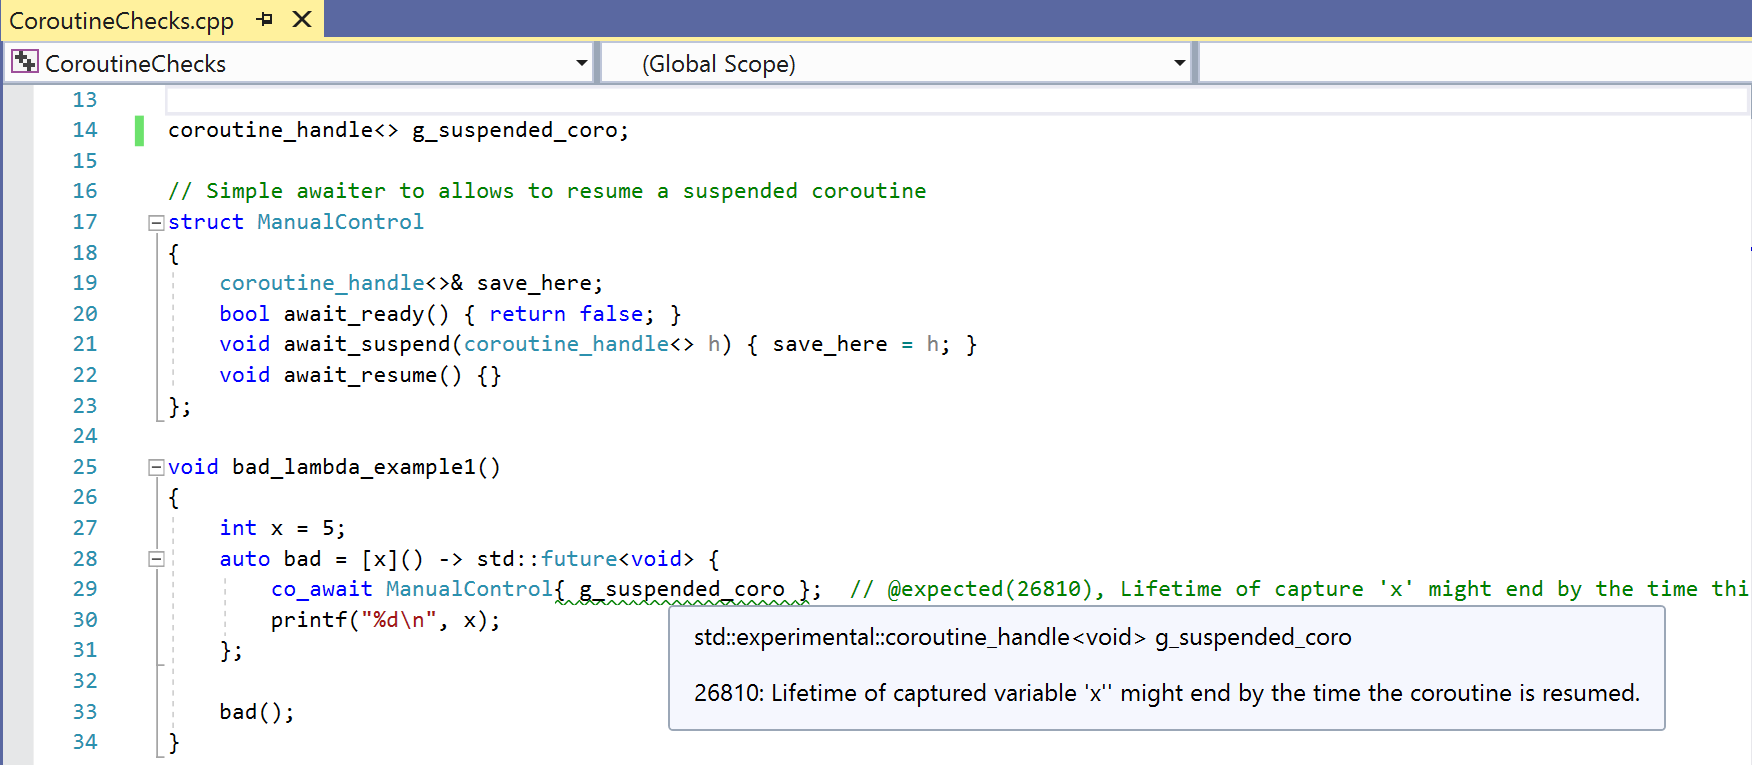 Screenshot showing a warning that the lifetime of a captured variable might end before a coroutine is resumed.